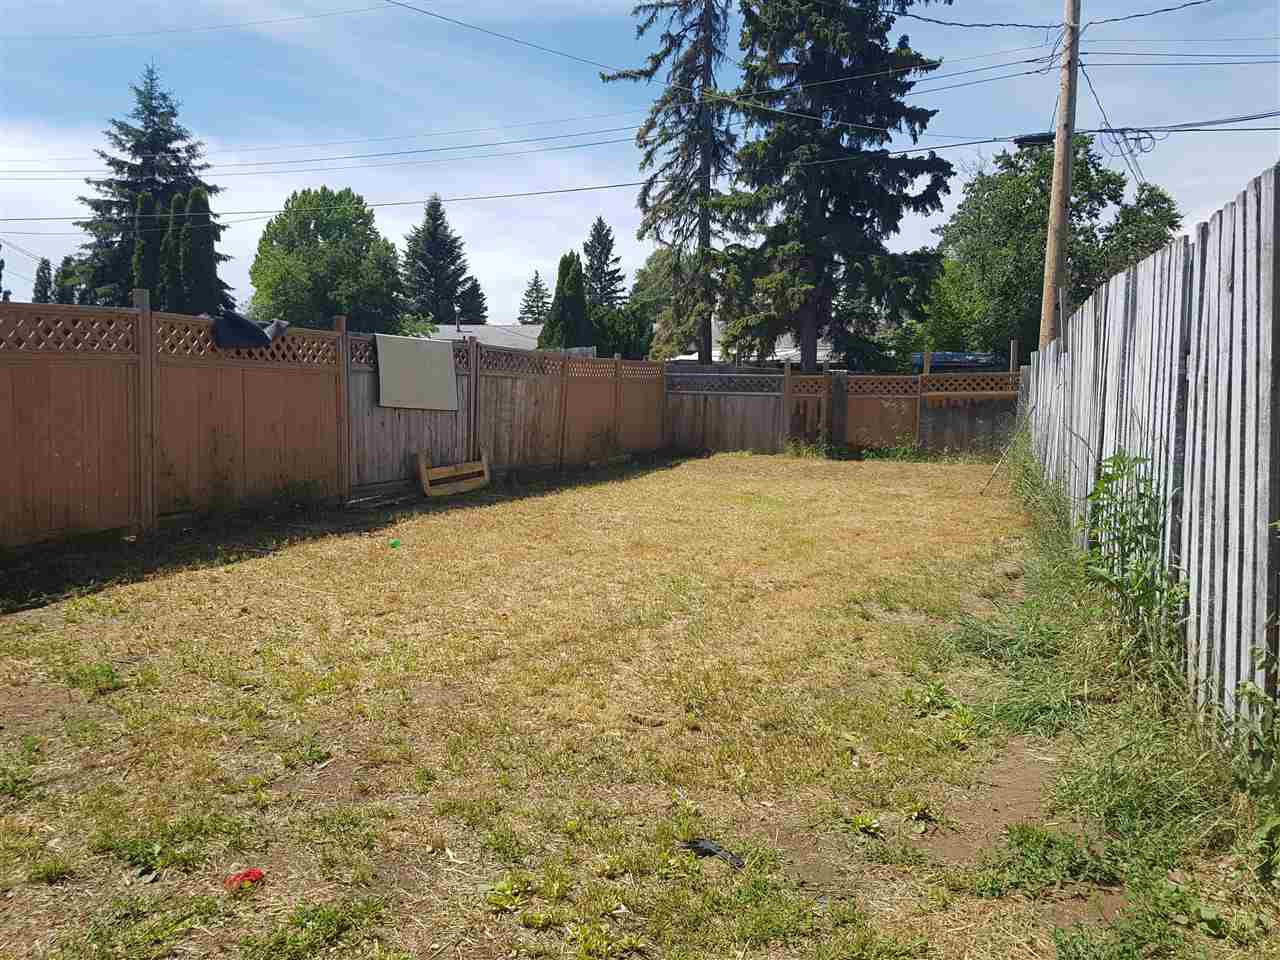 Photo 9: Photos: 2241 NORWOOD Street in Prince George: VLA House 1/2 Duplex for sale (PG City Central (Zone 72))  : MLS®# R2084011